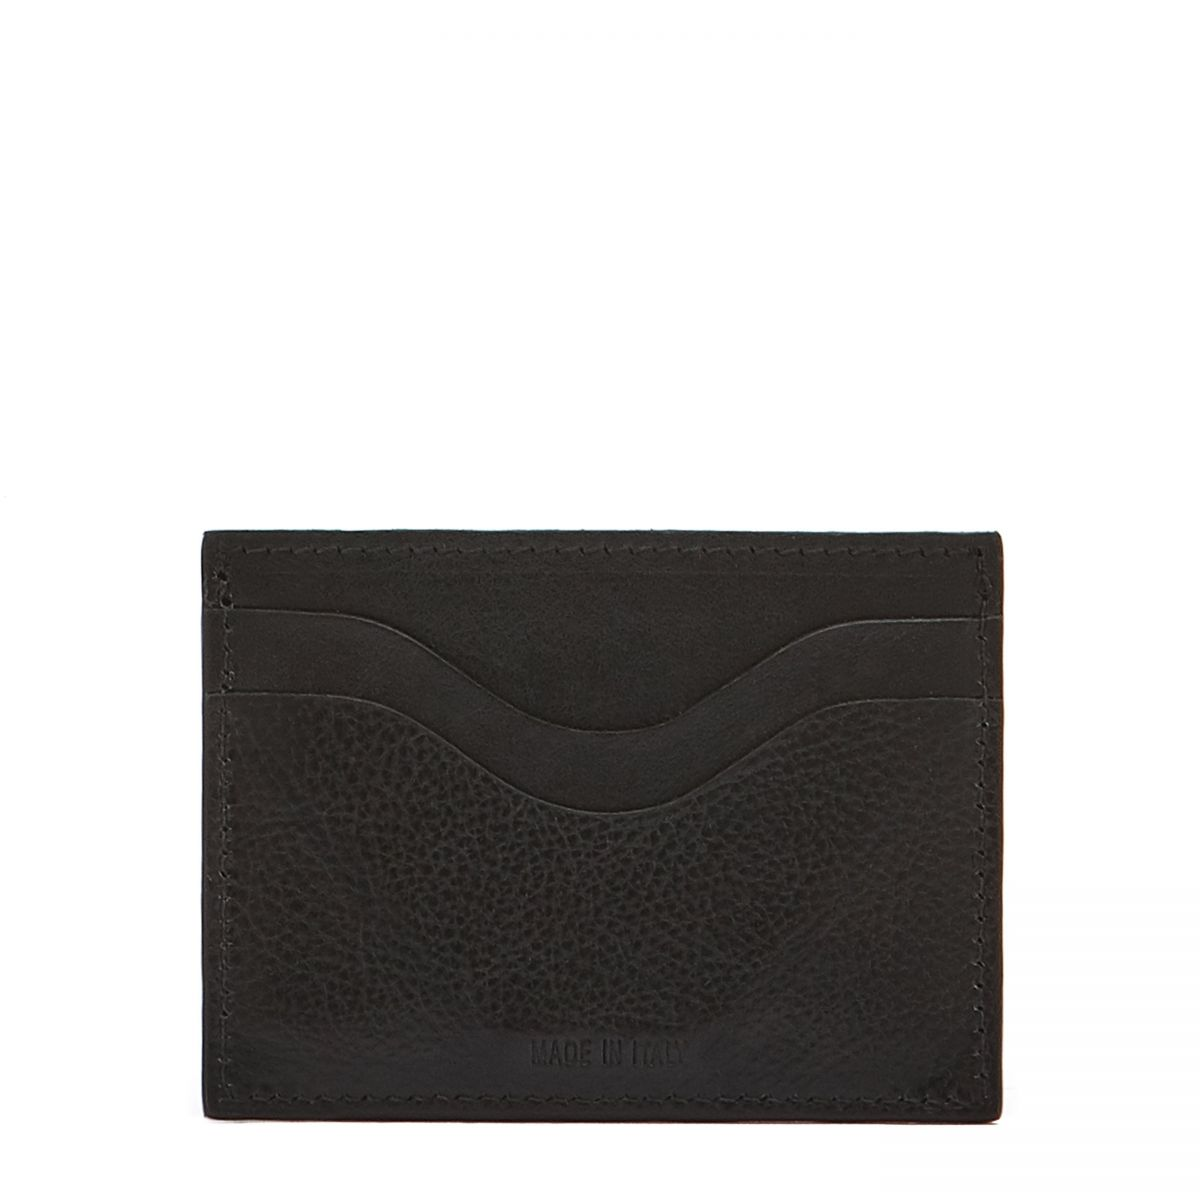 Card Case  in Cowhide Leather SCC050 color Black | Details